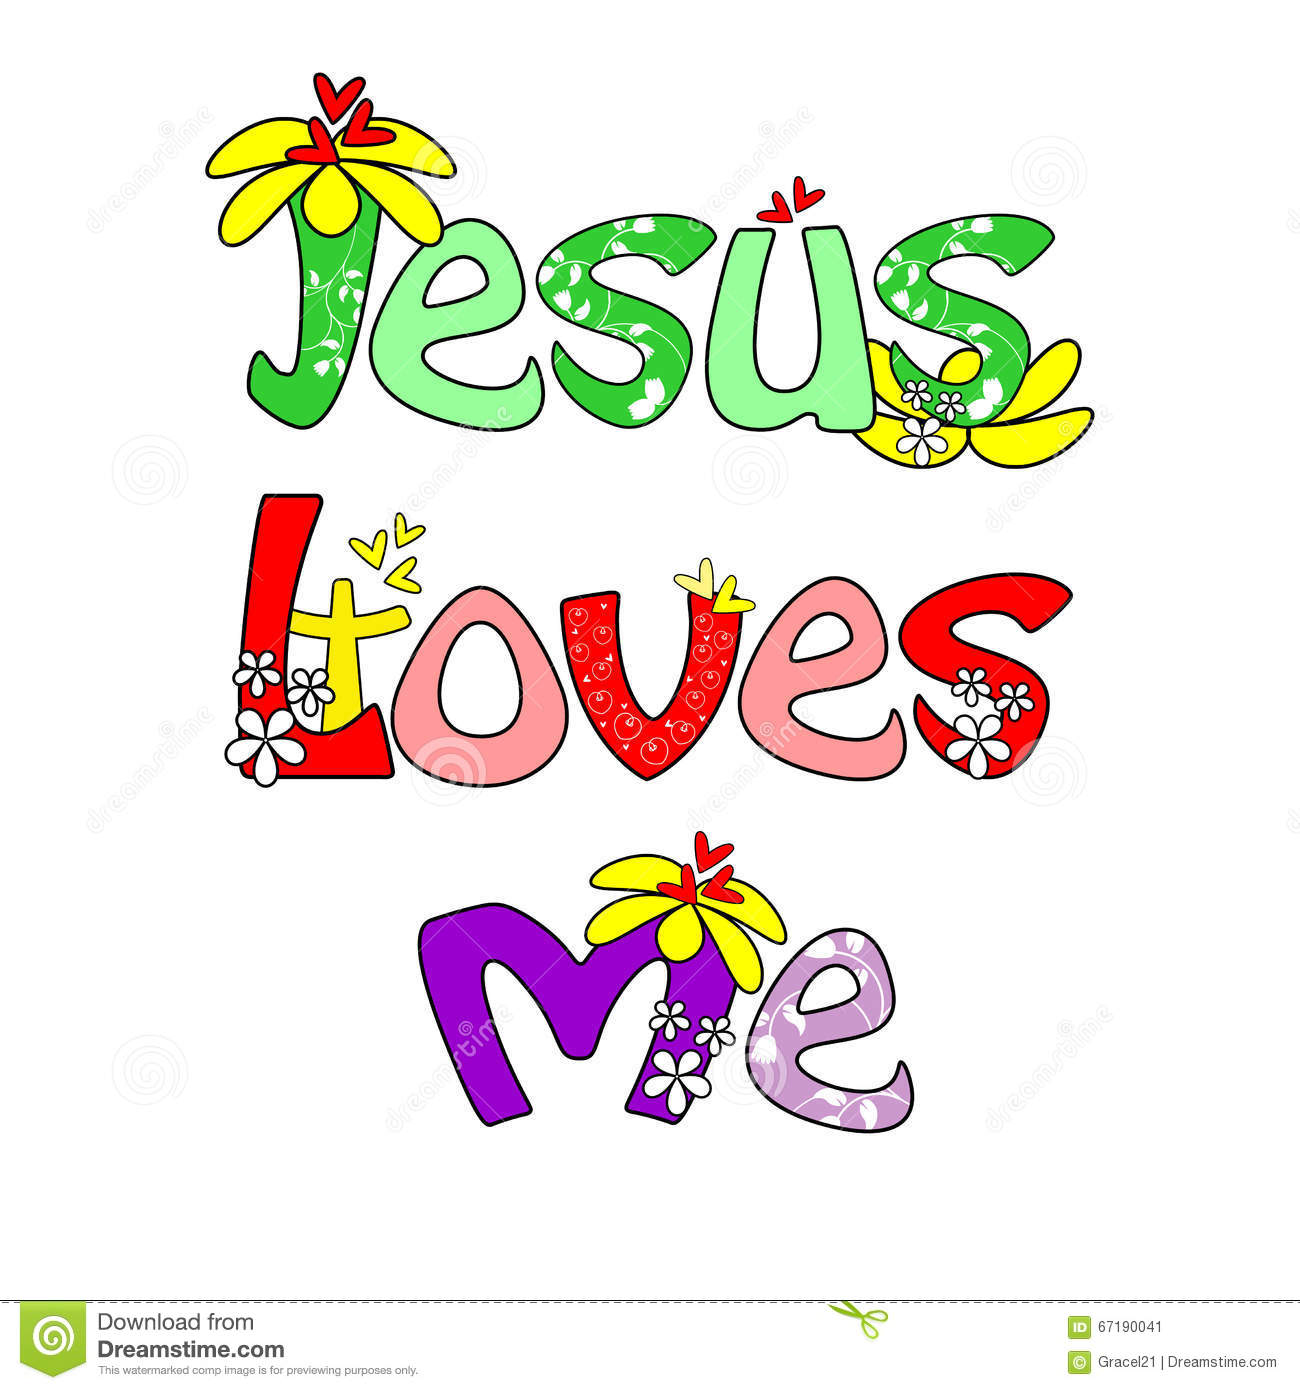 Yes Jesus Loves You